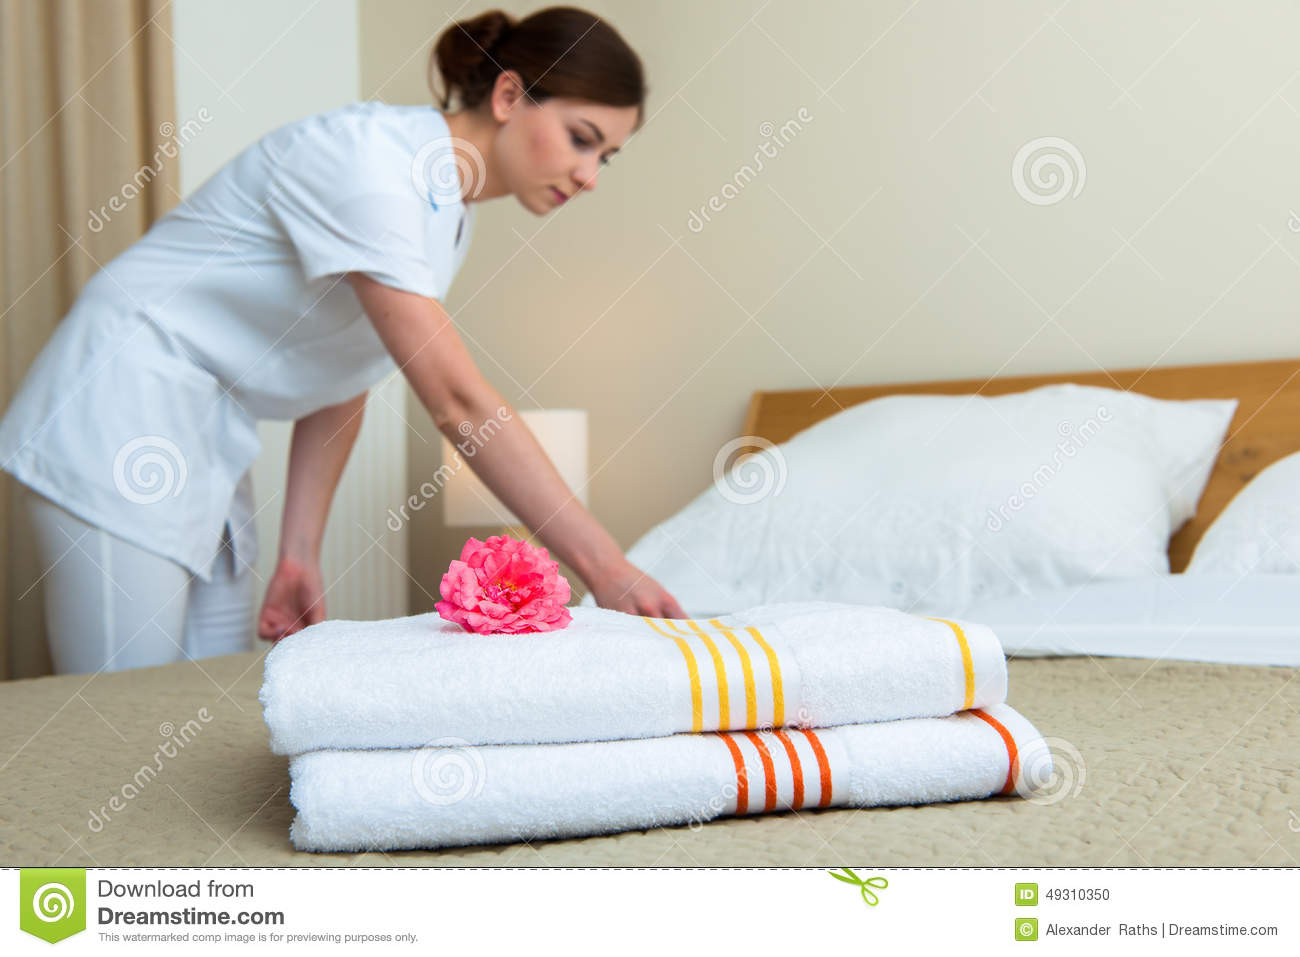 Maid Making Bed In Hotel Room Stock Photo Image 49310350